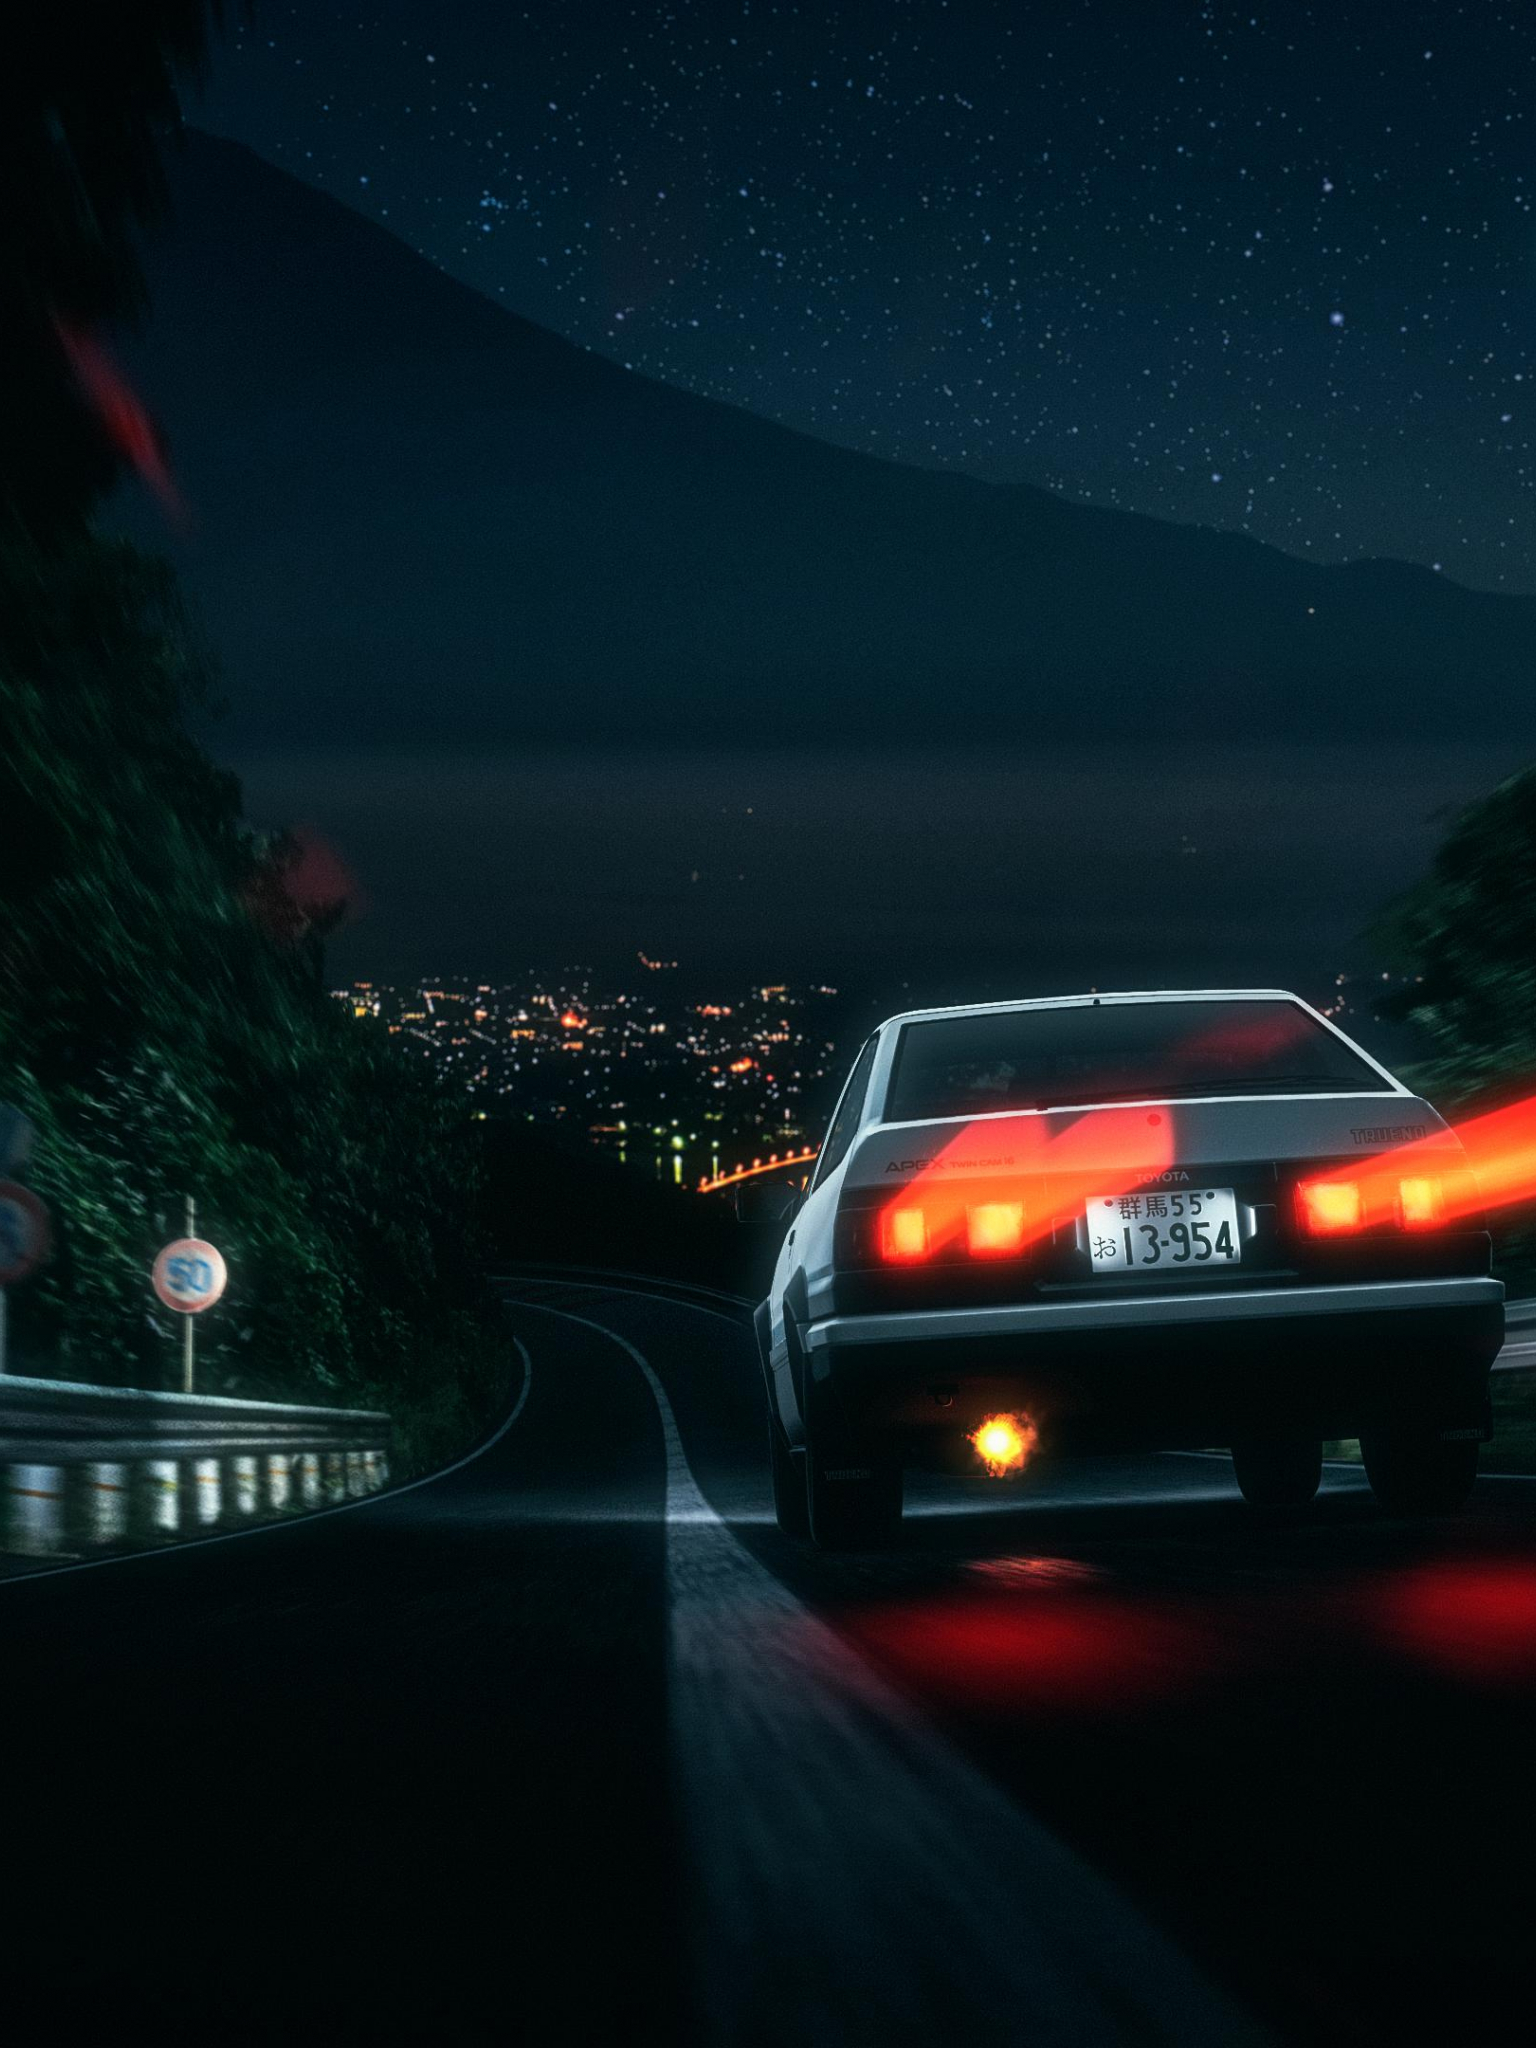 Free download Initial D by RaY21rus [21x21] wallpapers ...